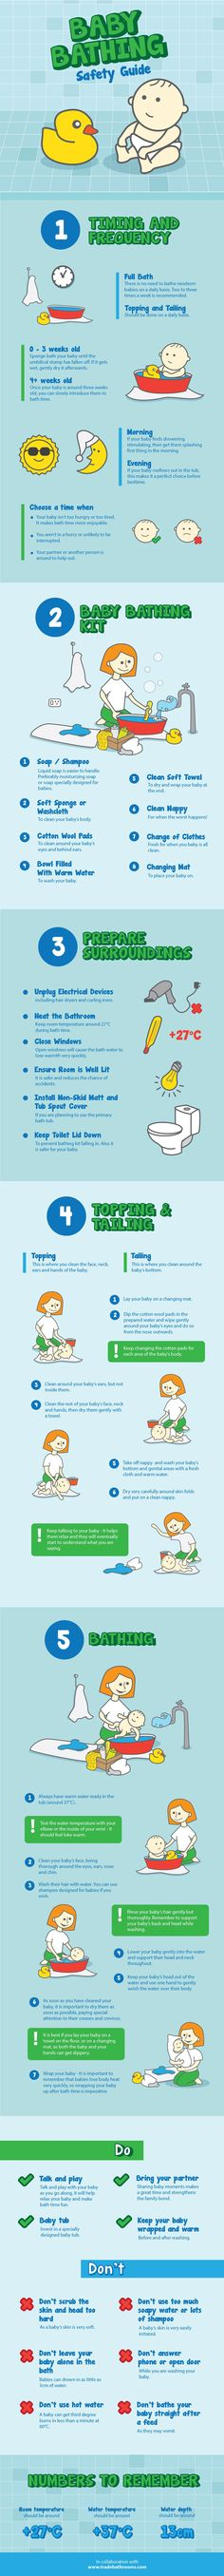 Baby Bathing Safety Guide #infographic #Baby #Health #family